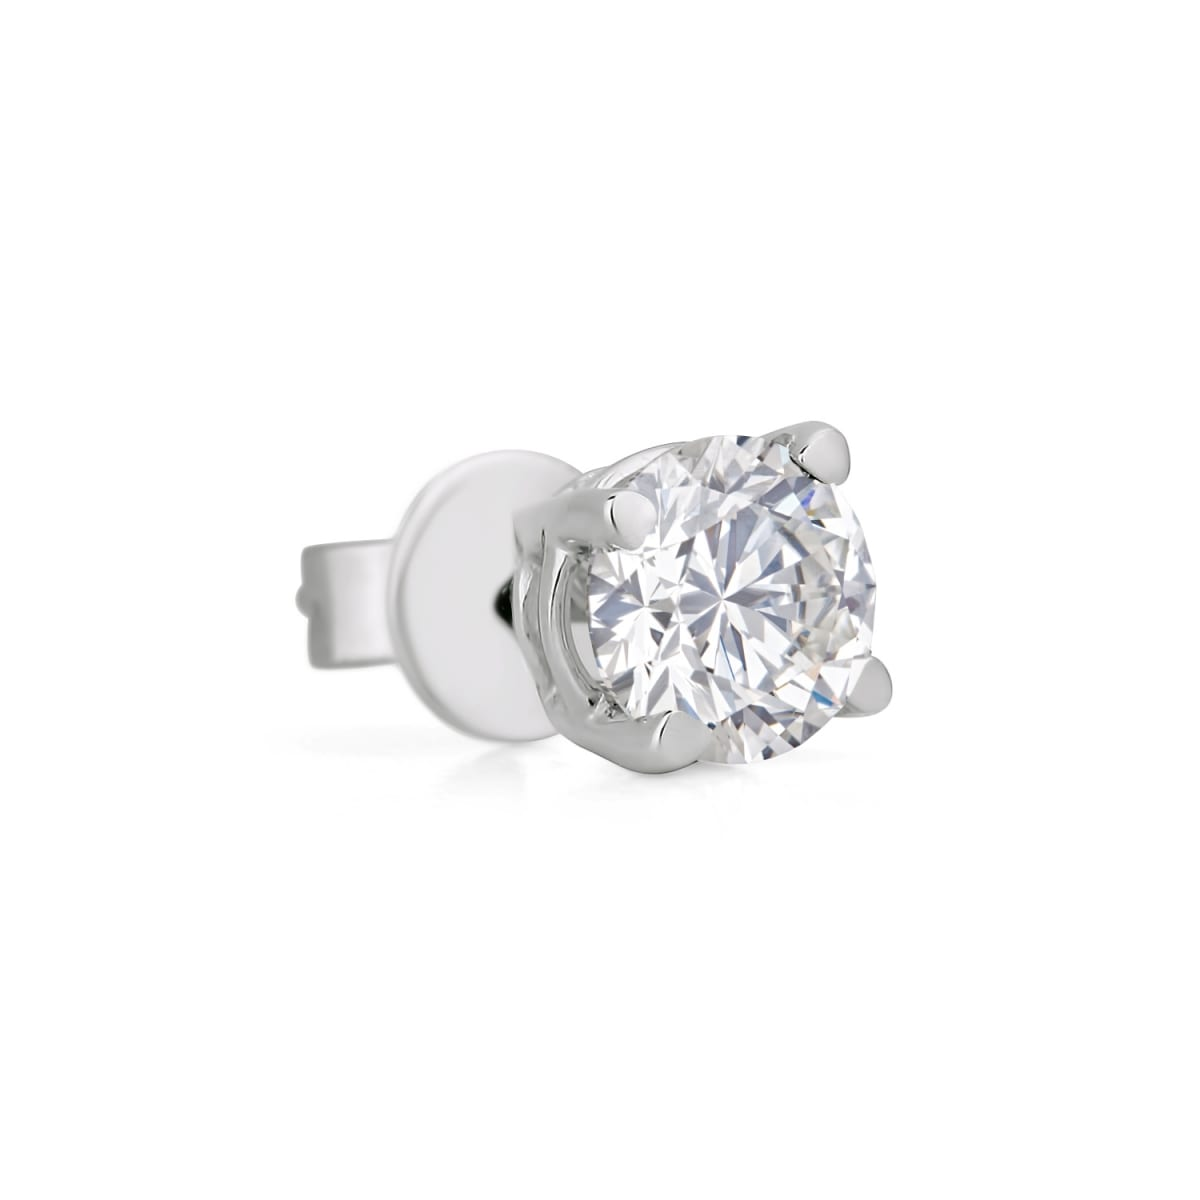 53995597f4c05 SINGLE DIAMOND STUD EARRING